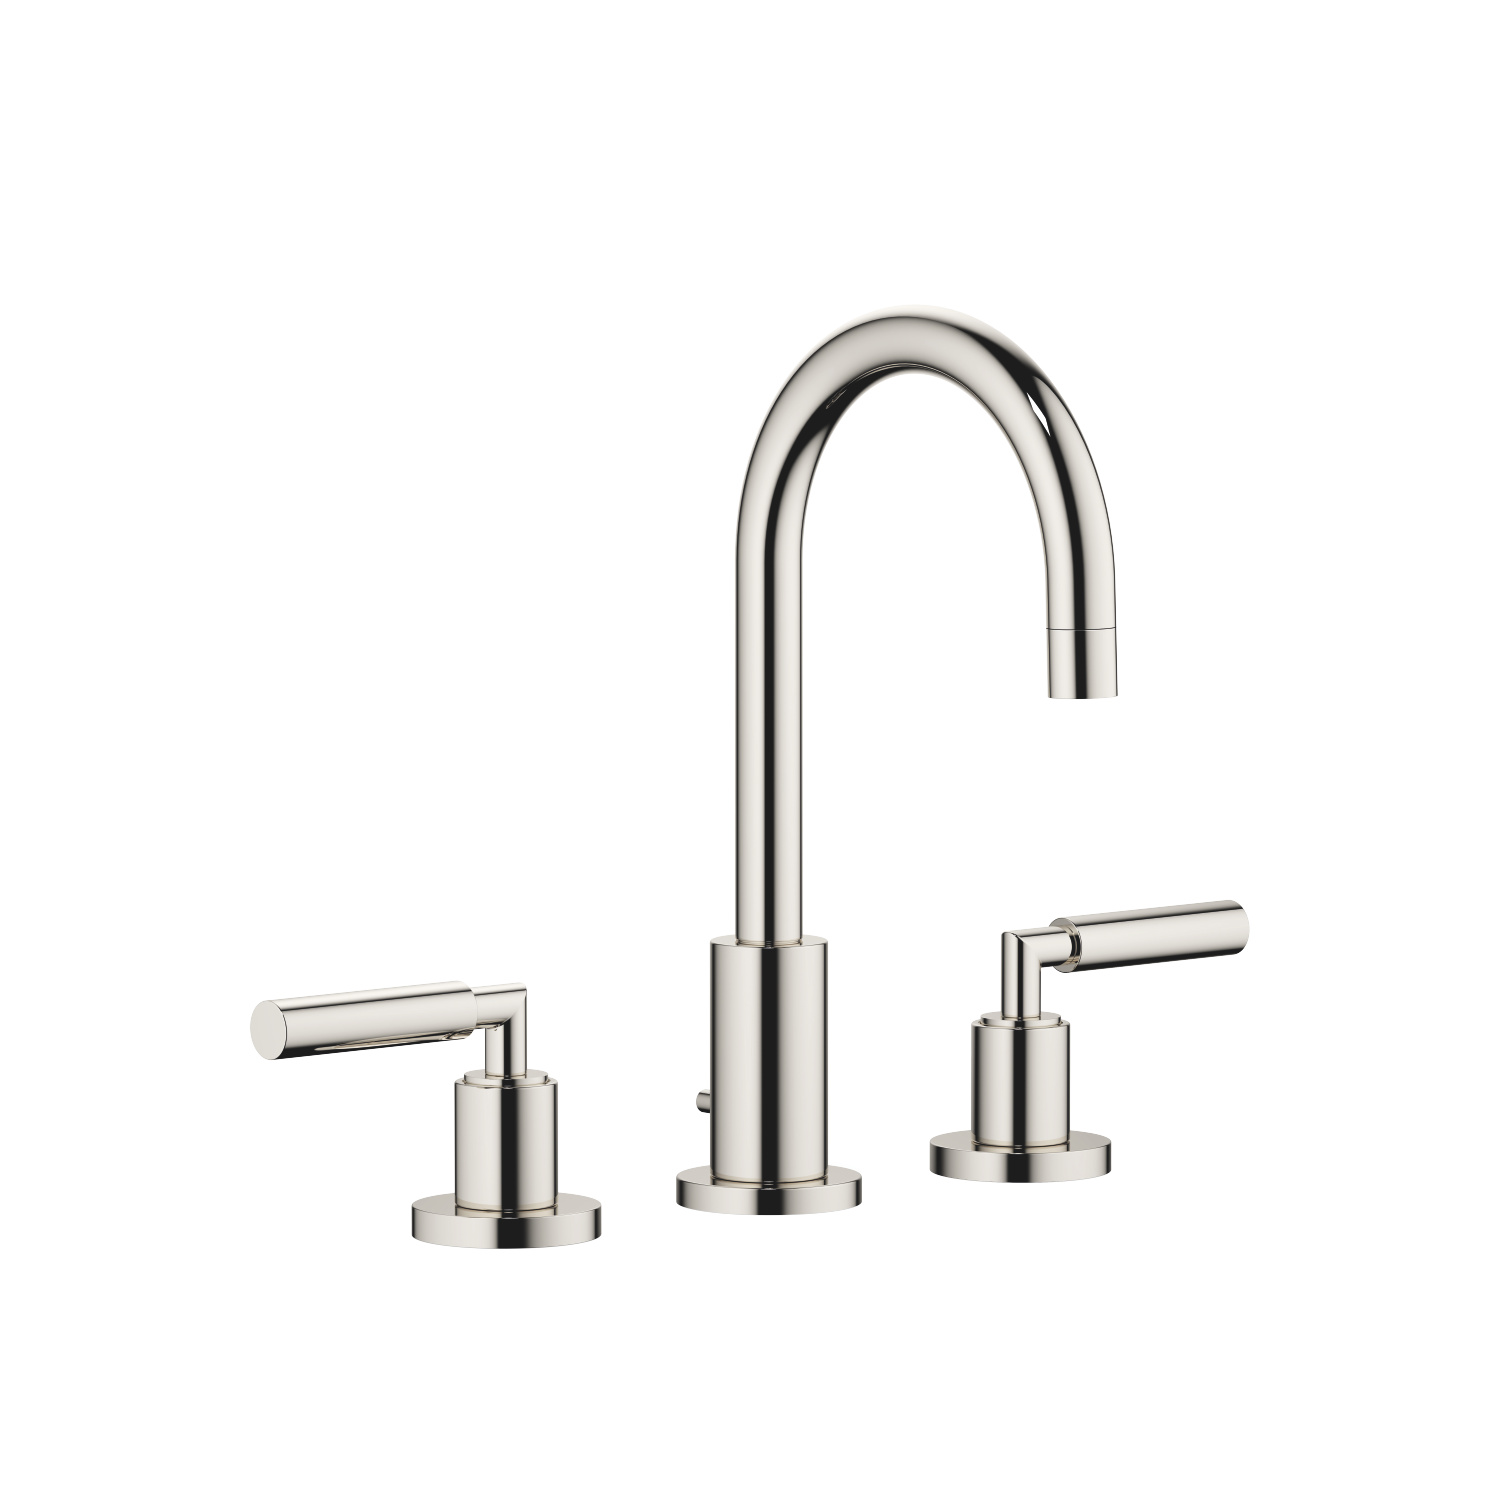 Three-hole basin mixer with pop-up waste - platinum